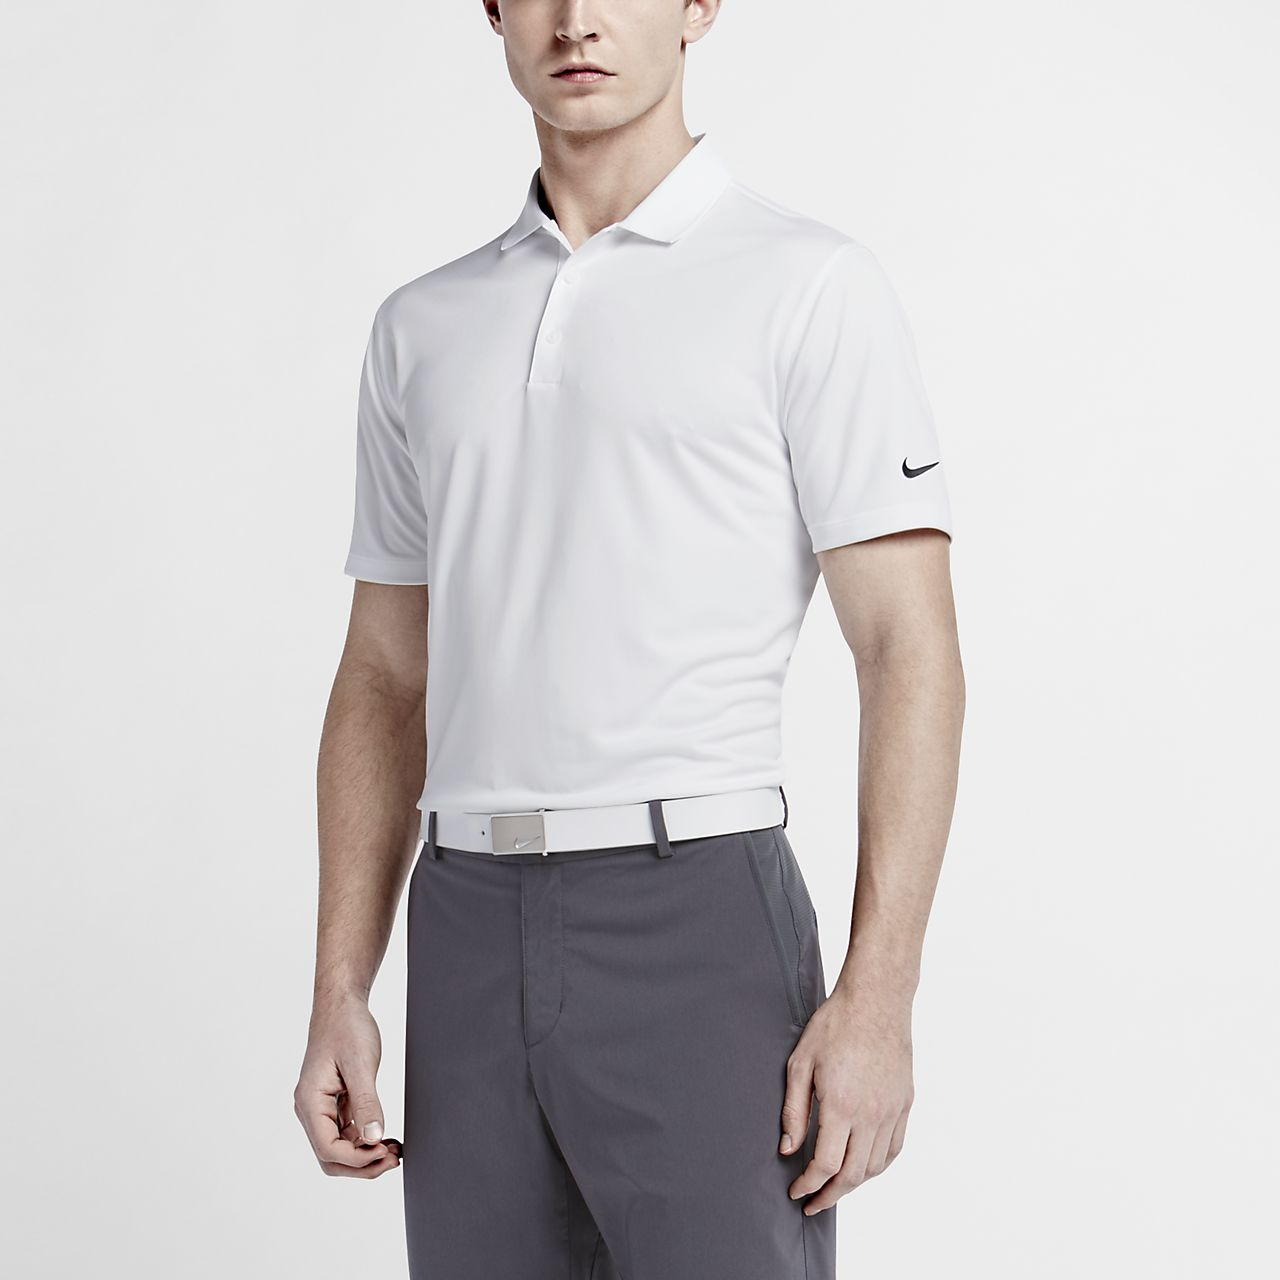 6c912915 Nike Victory Solid Men's Standard Fit Golf Polo. Nike.com IN